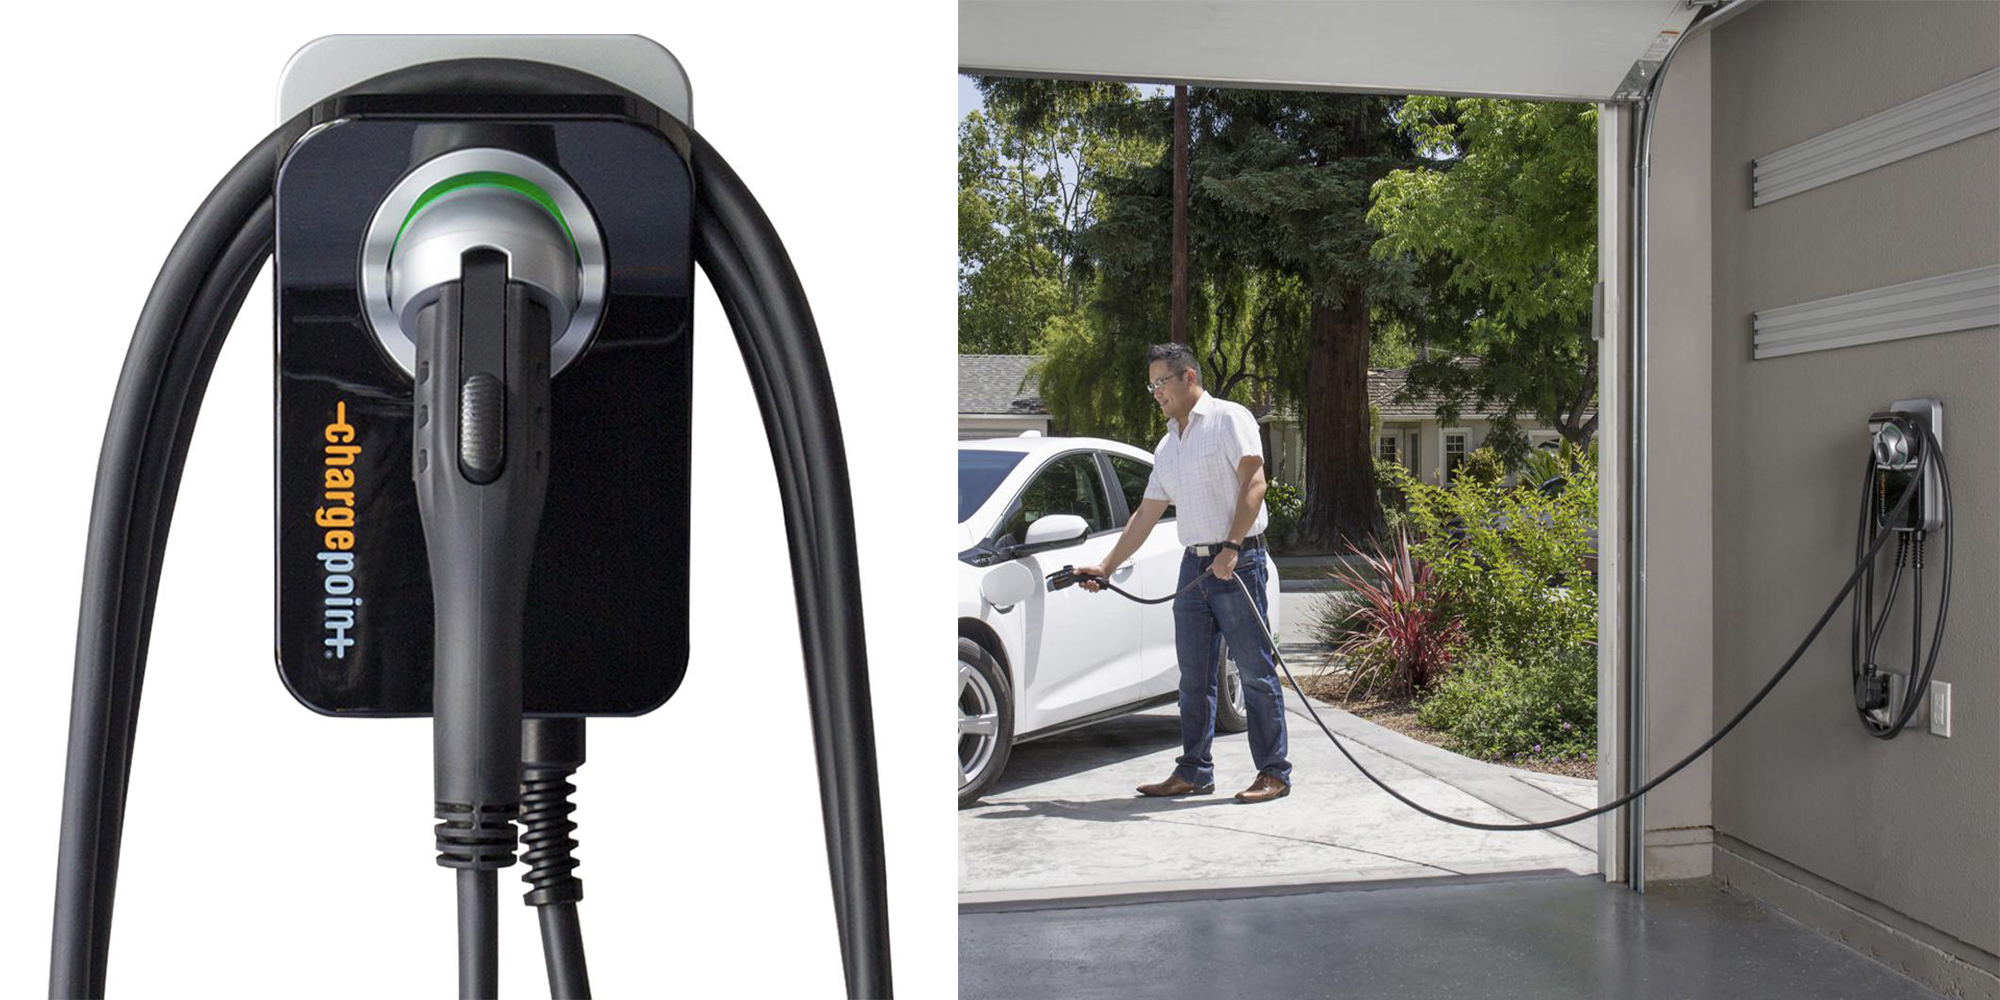 Banc A Charge Guidee Chargepoint Claims Exclusive Right To Networked Ev Charging